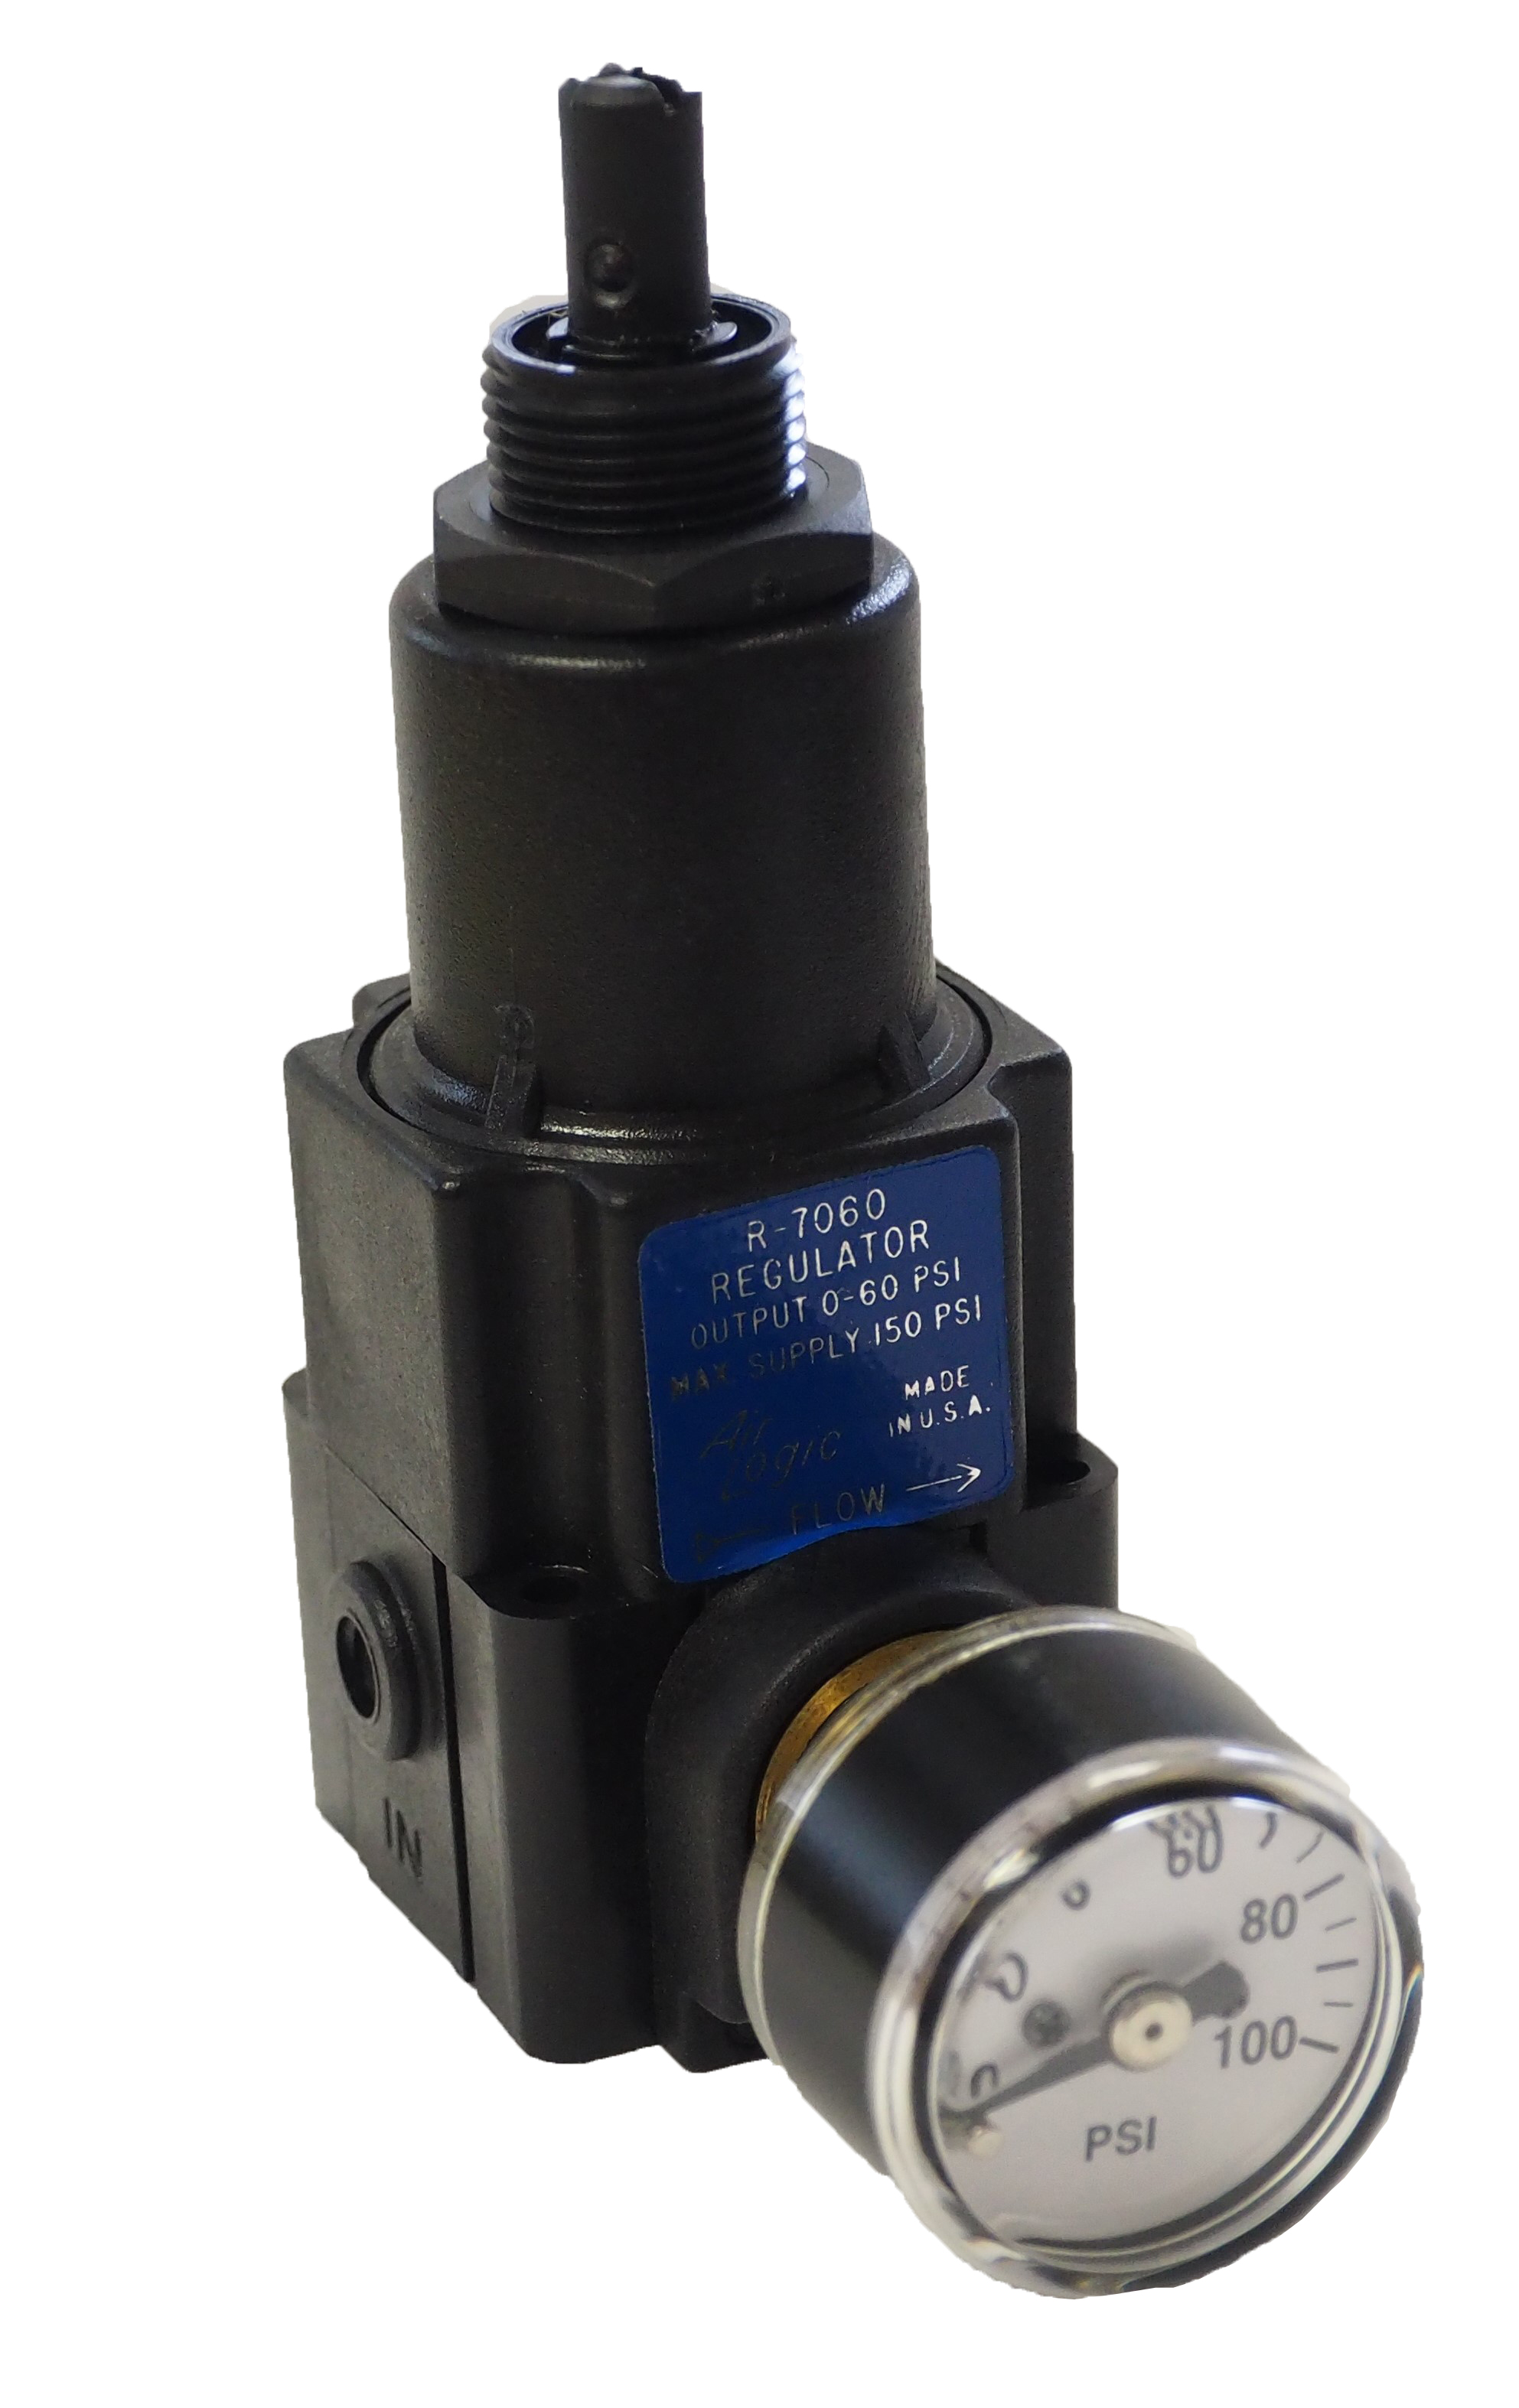 Precision Pressure Regulator R 7060 0i0b W S